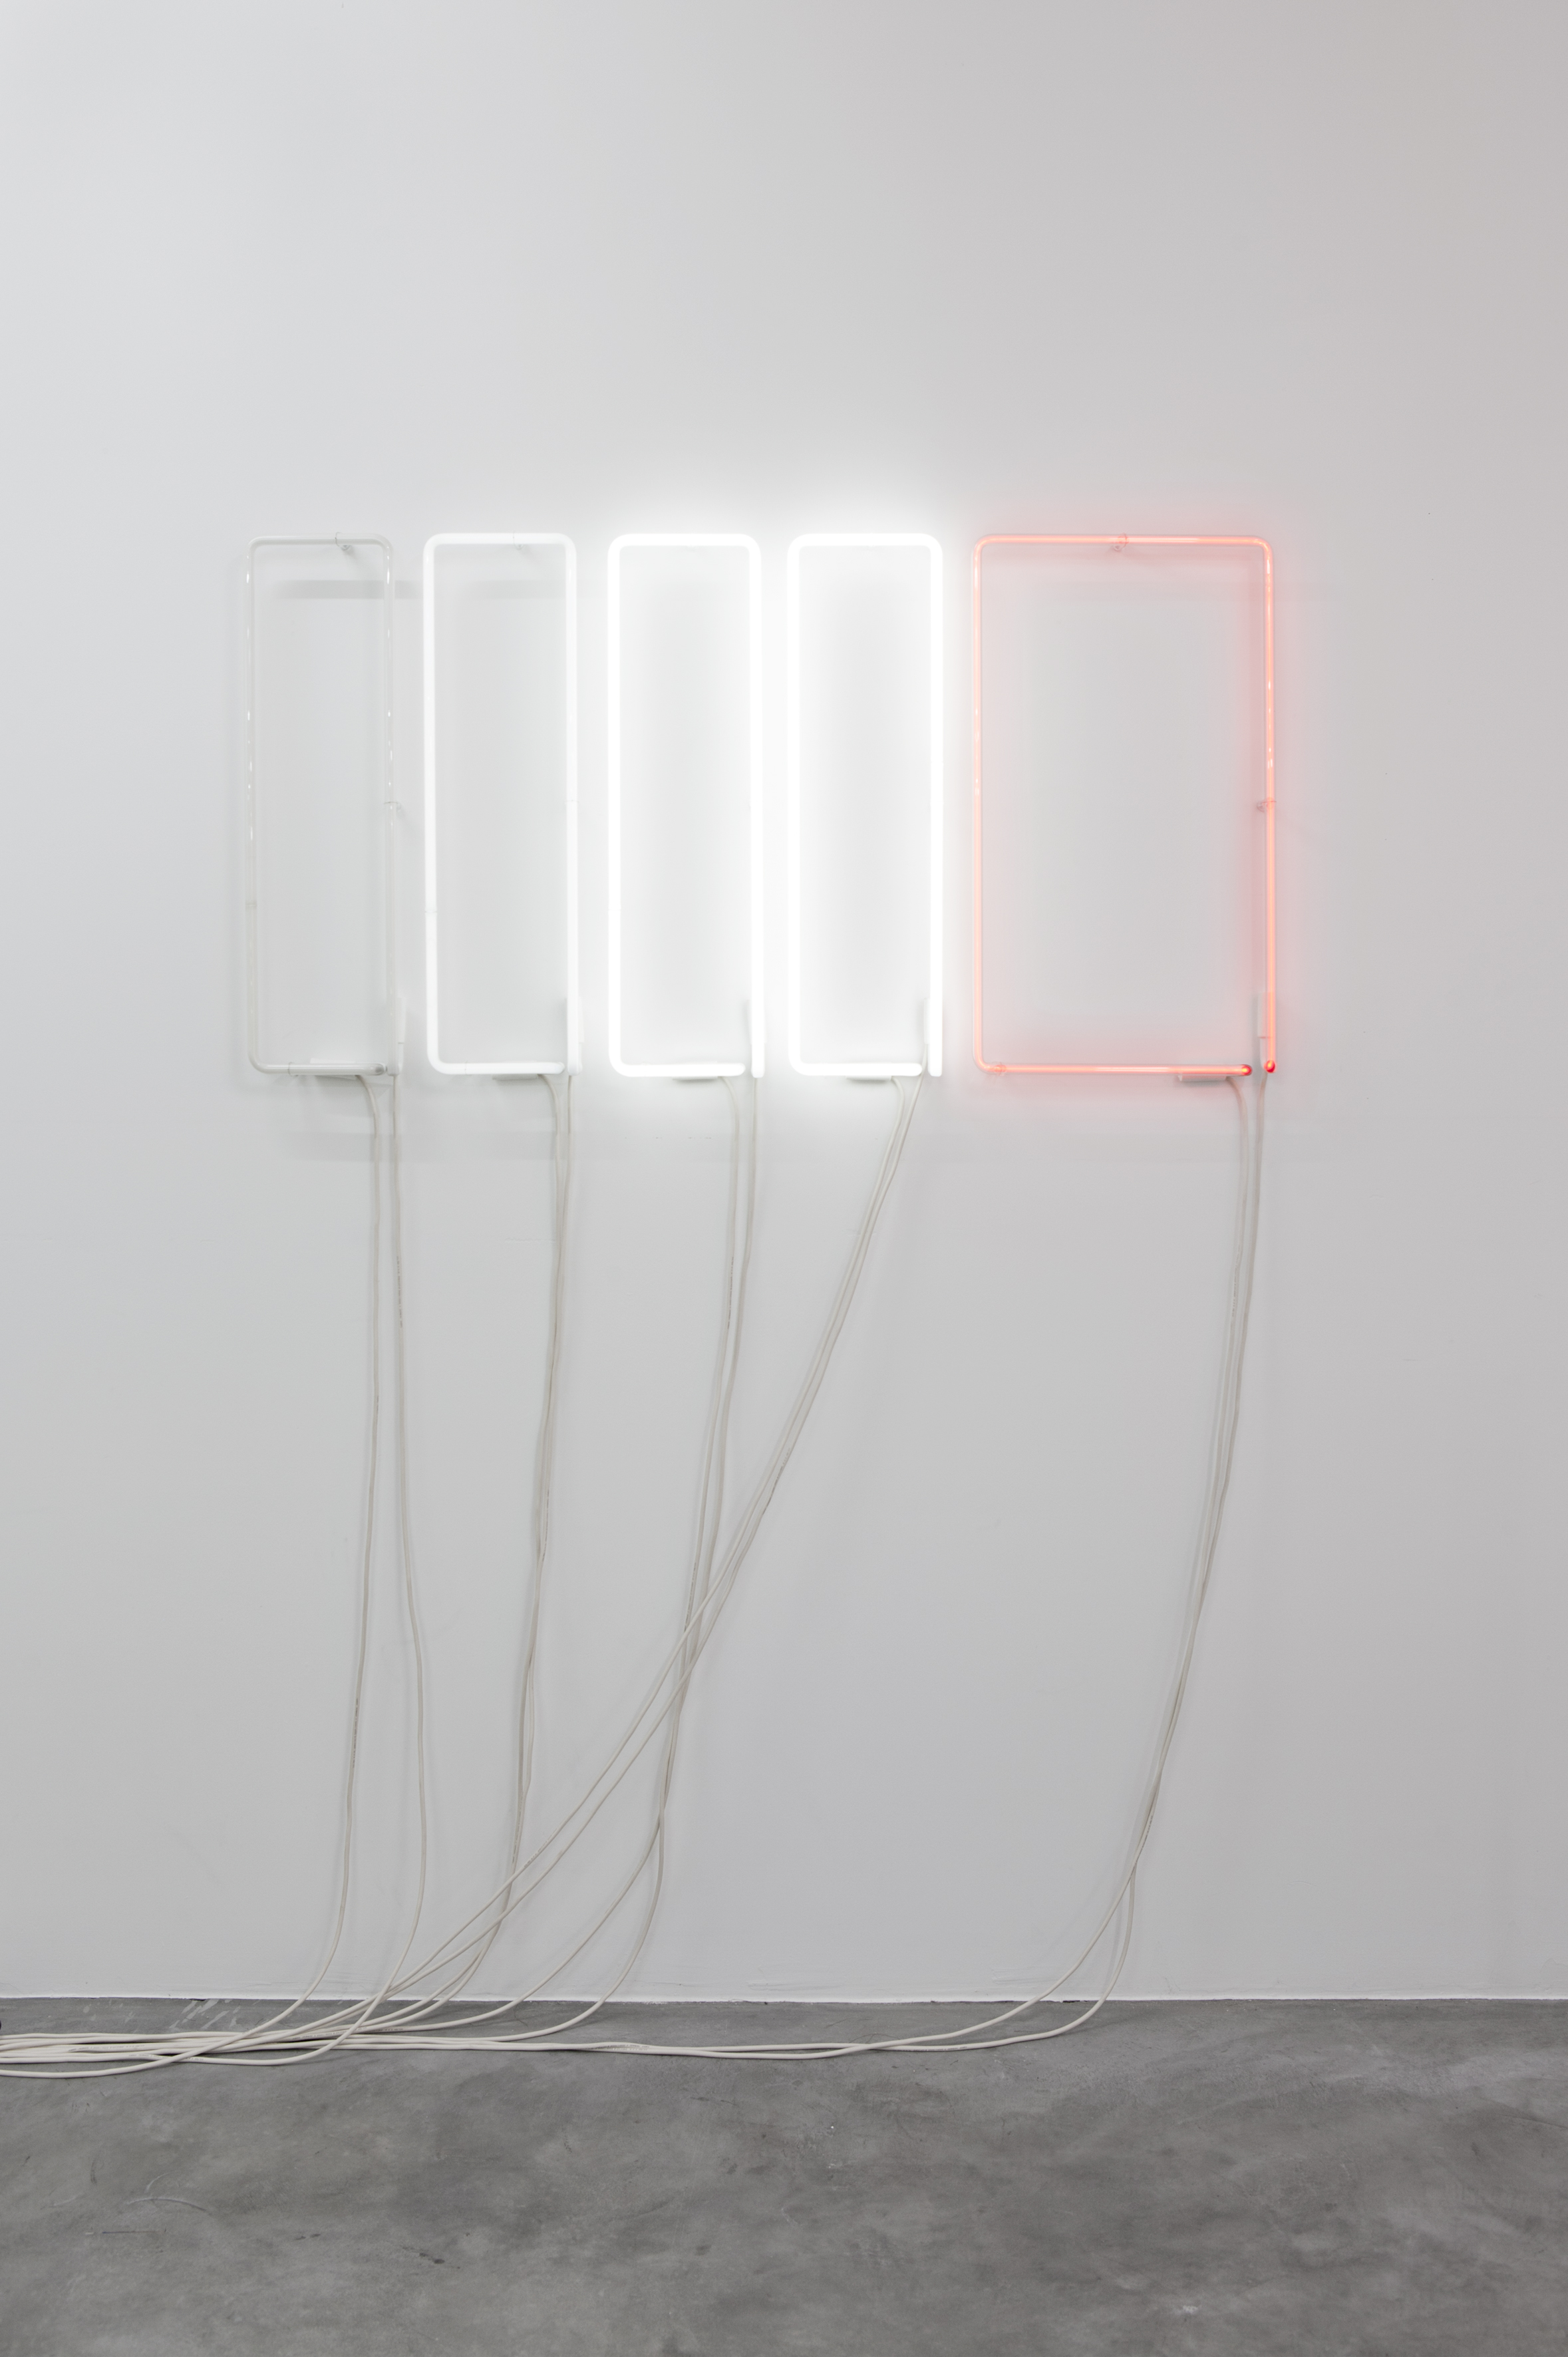 NLP3, 2013,Neon, sequenced control system,70 x 130 cm